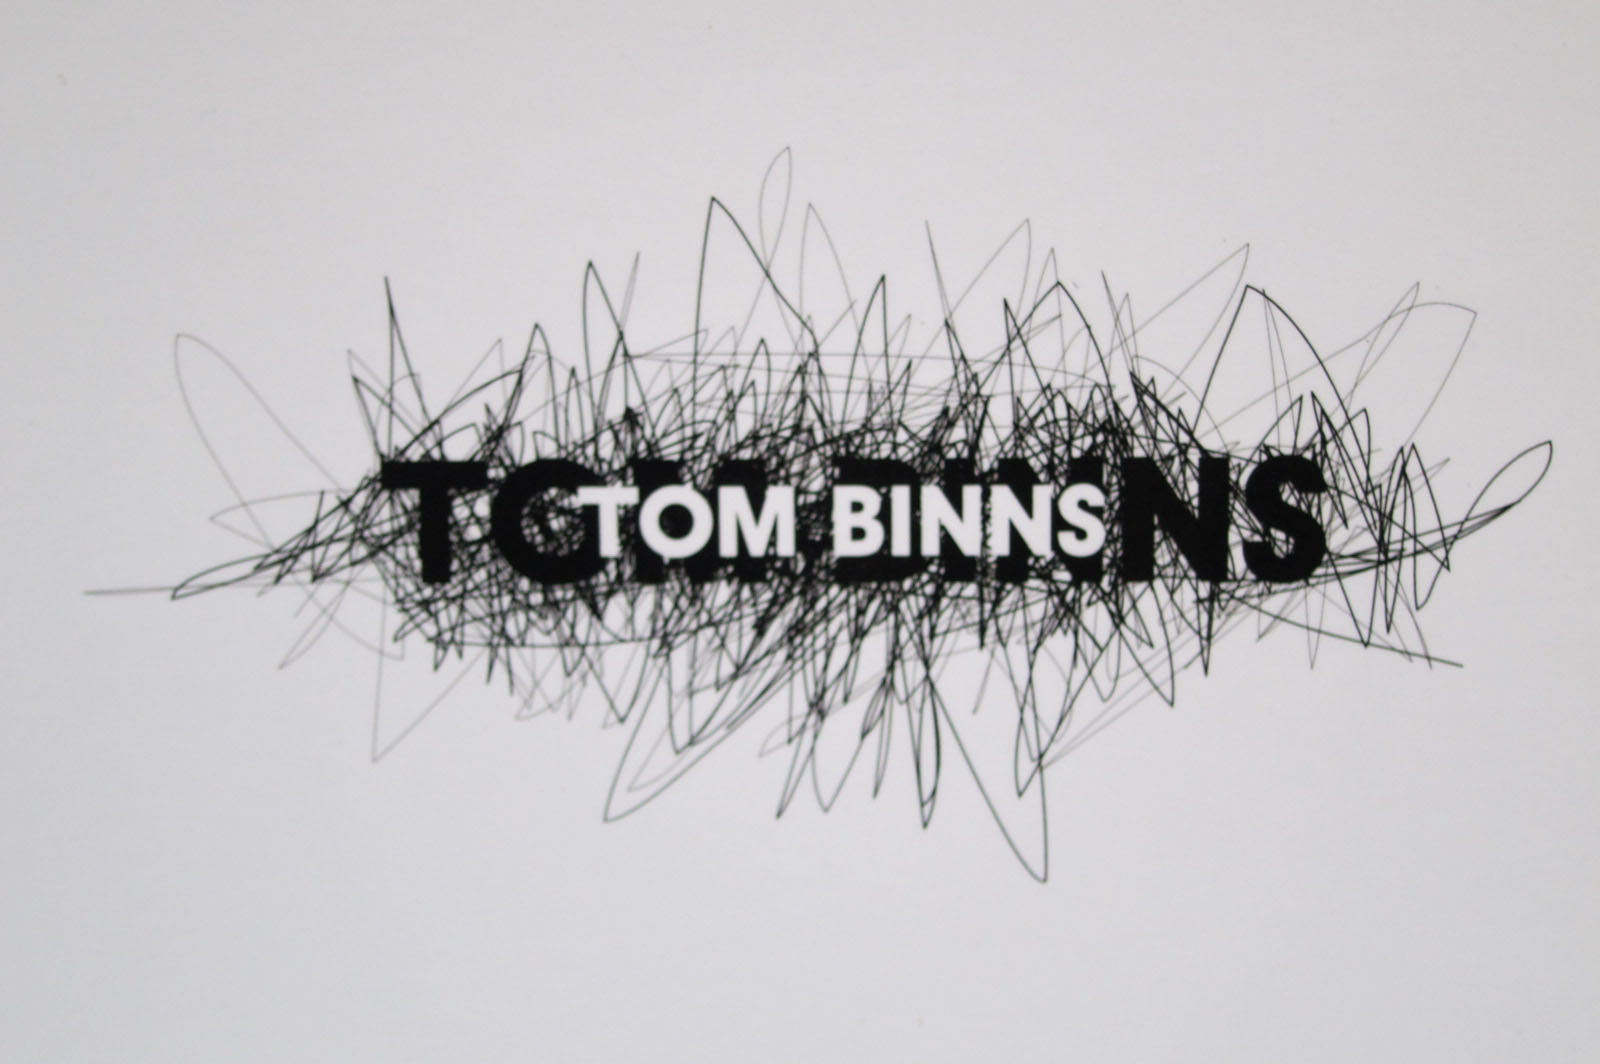 Tom Binns Logo Wallpaper